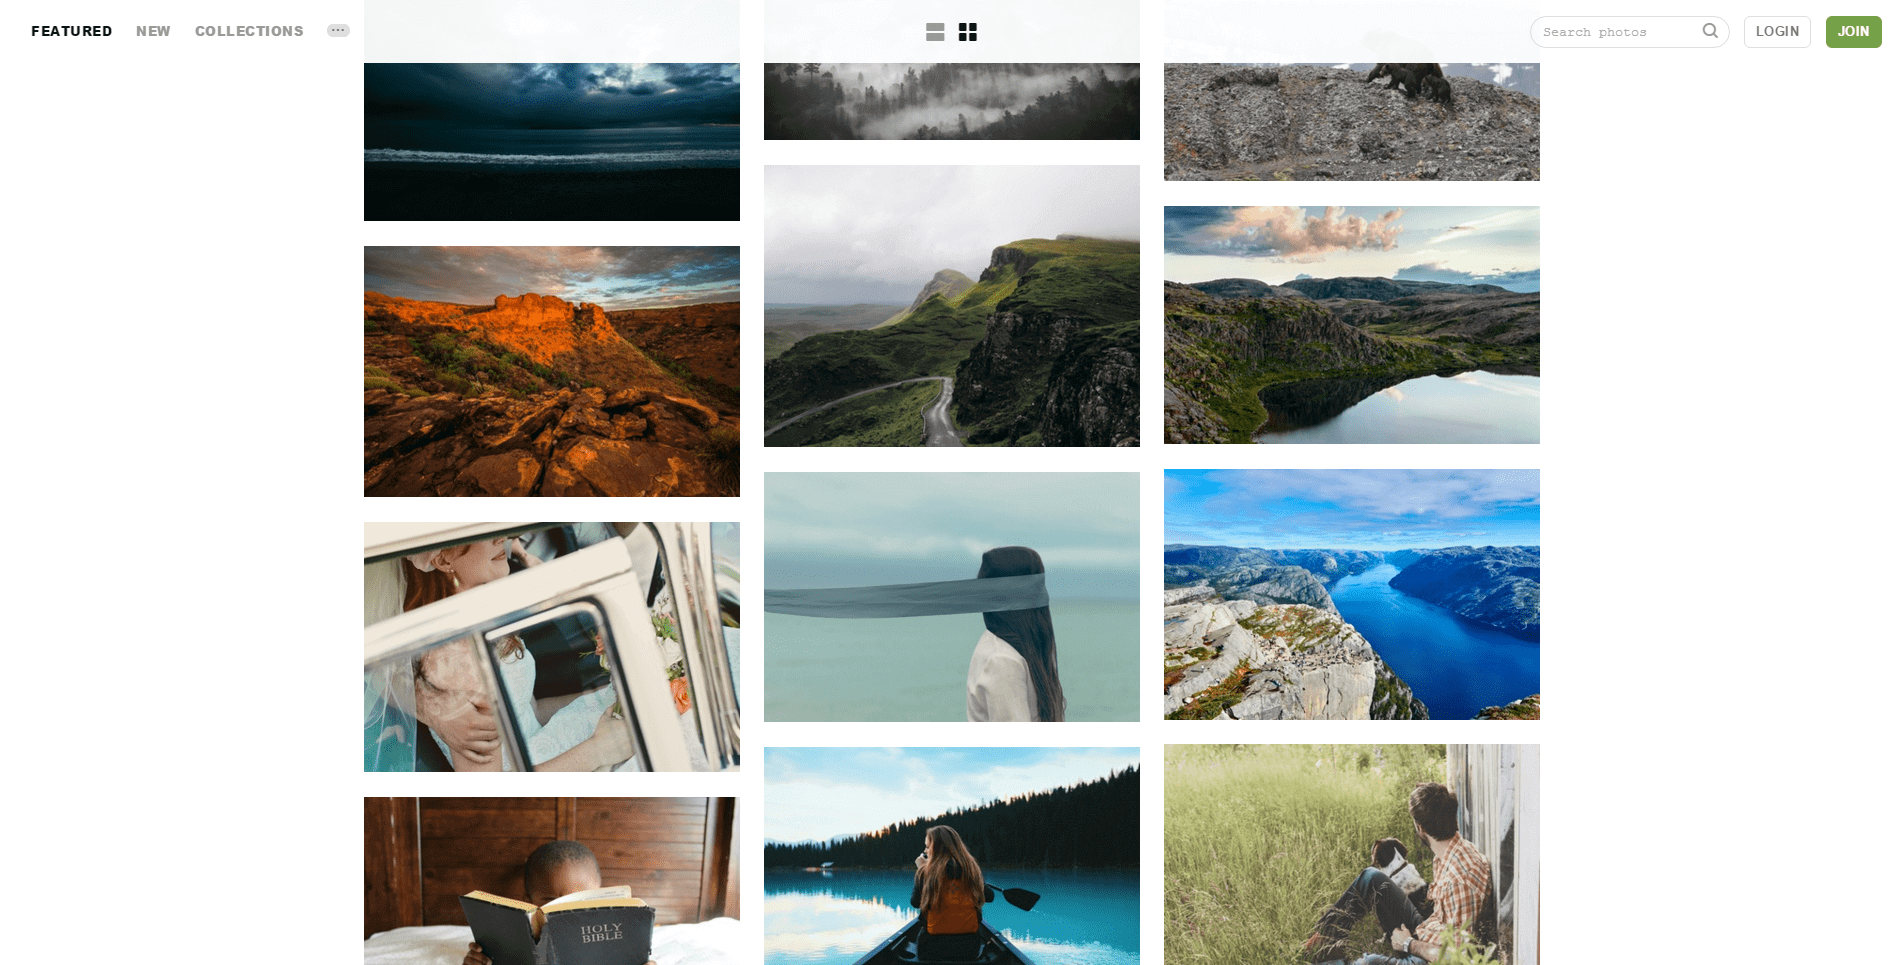 'Unsplash I High-Resolution Photos' - unsplash_com